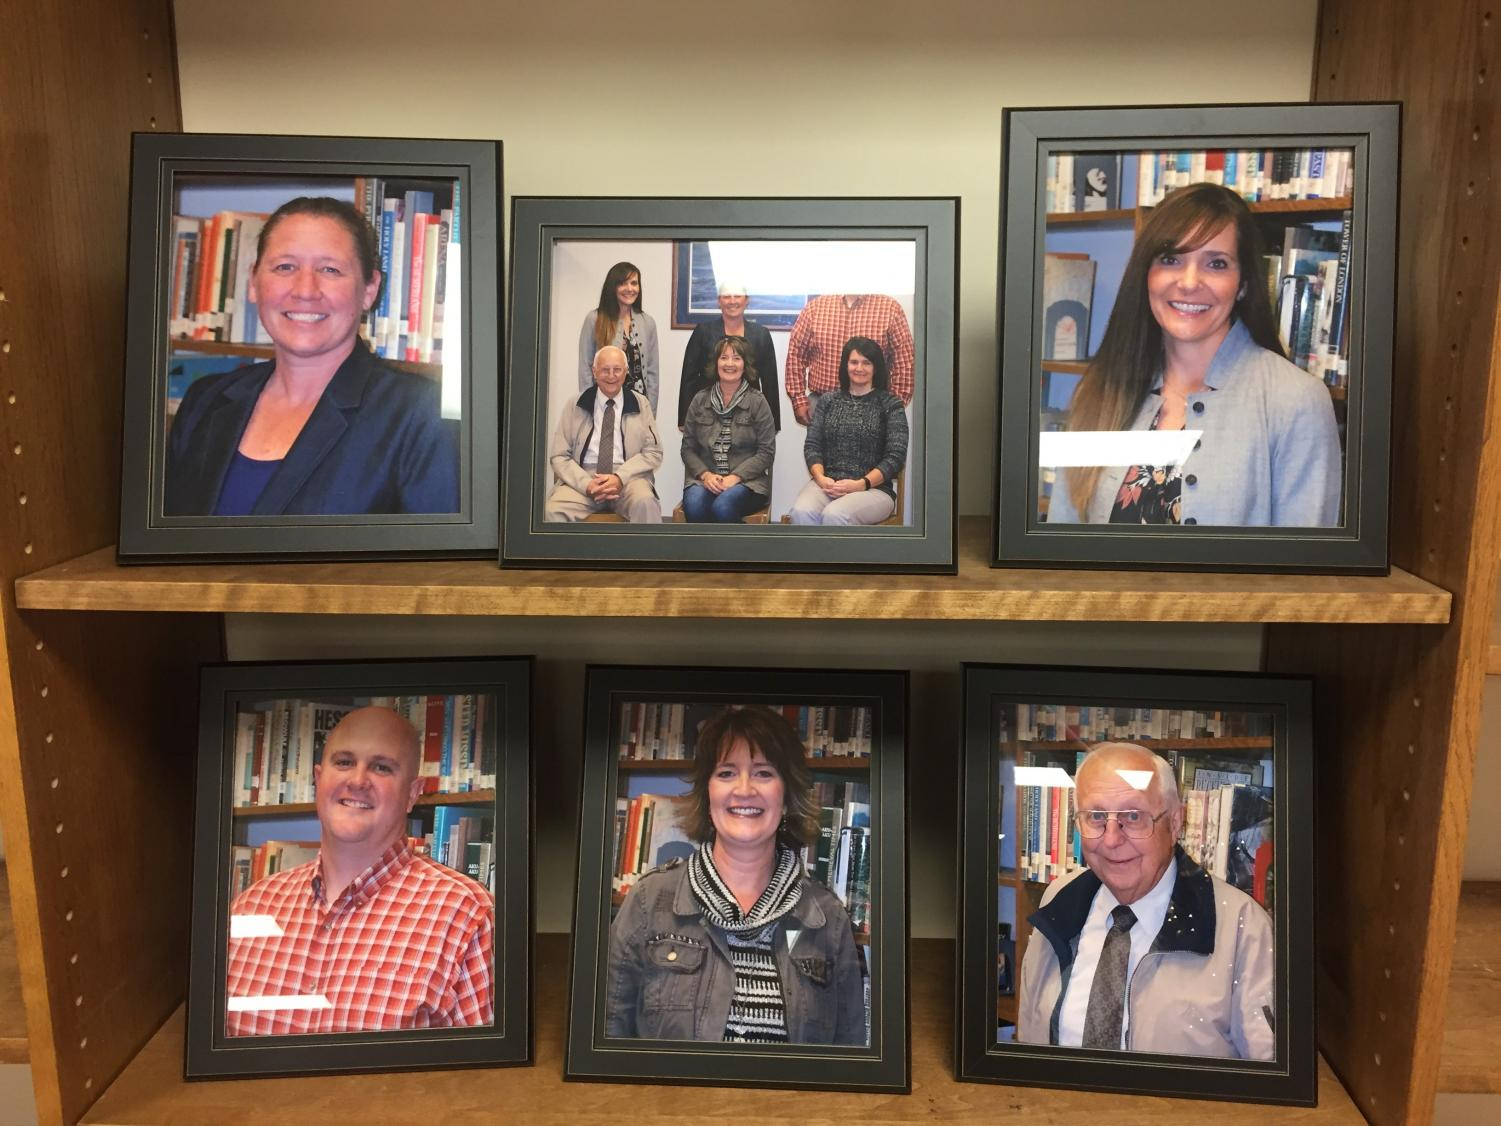 SCHOOL BOARD- Members of the school board are pictured. These pictures are found in the library.